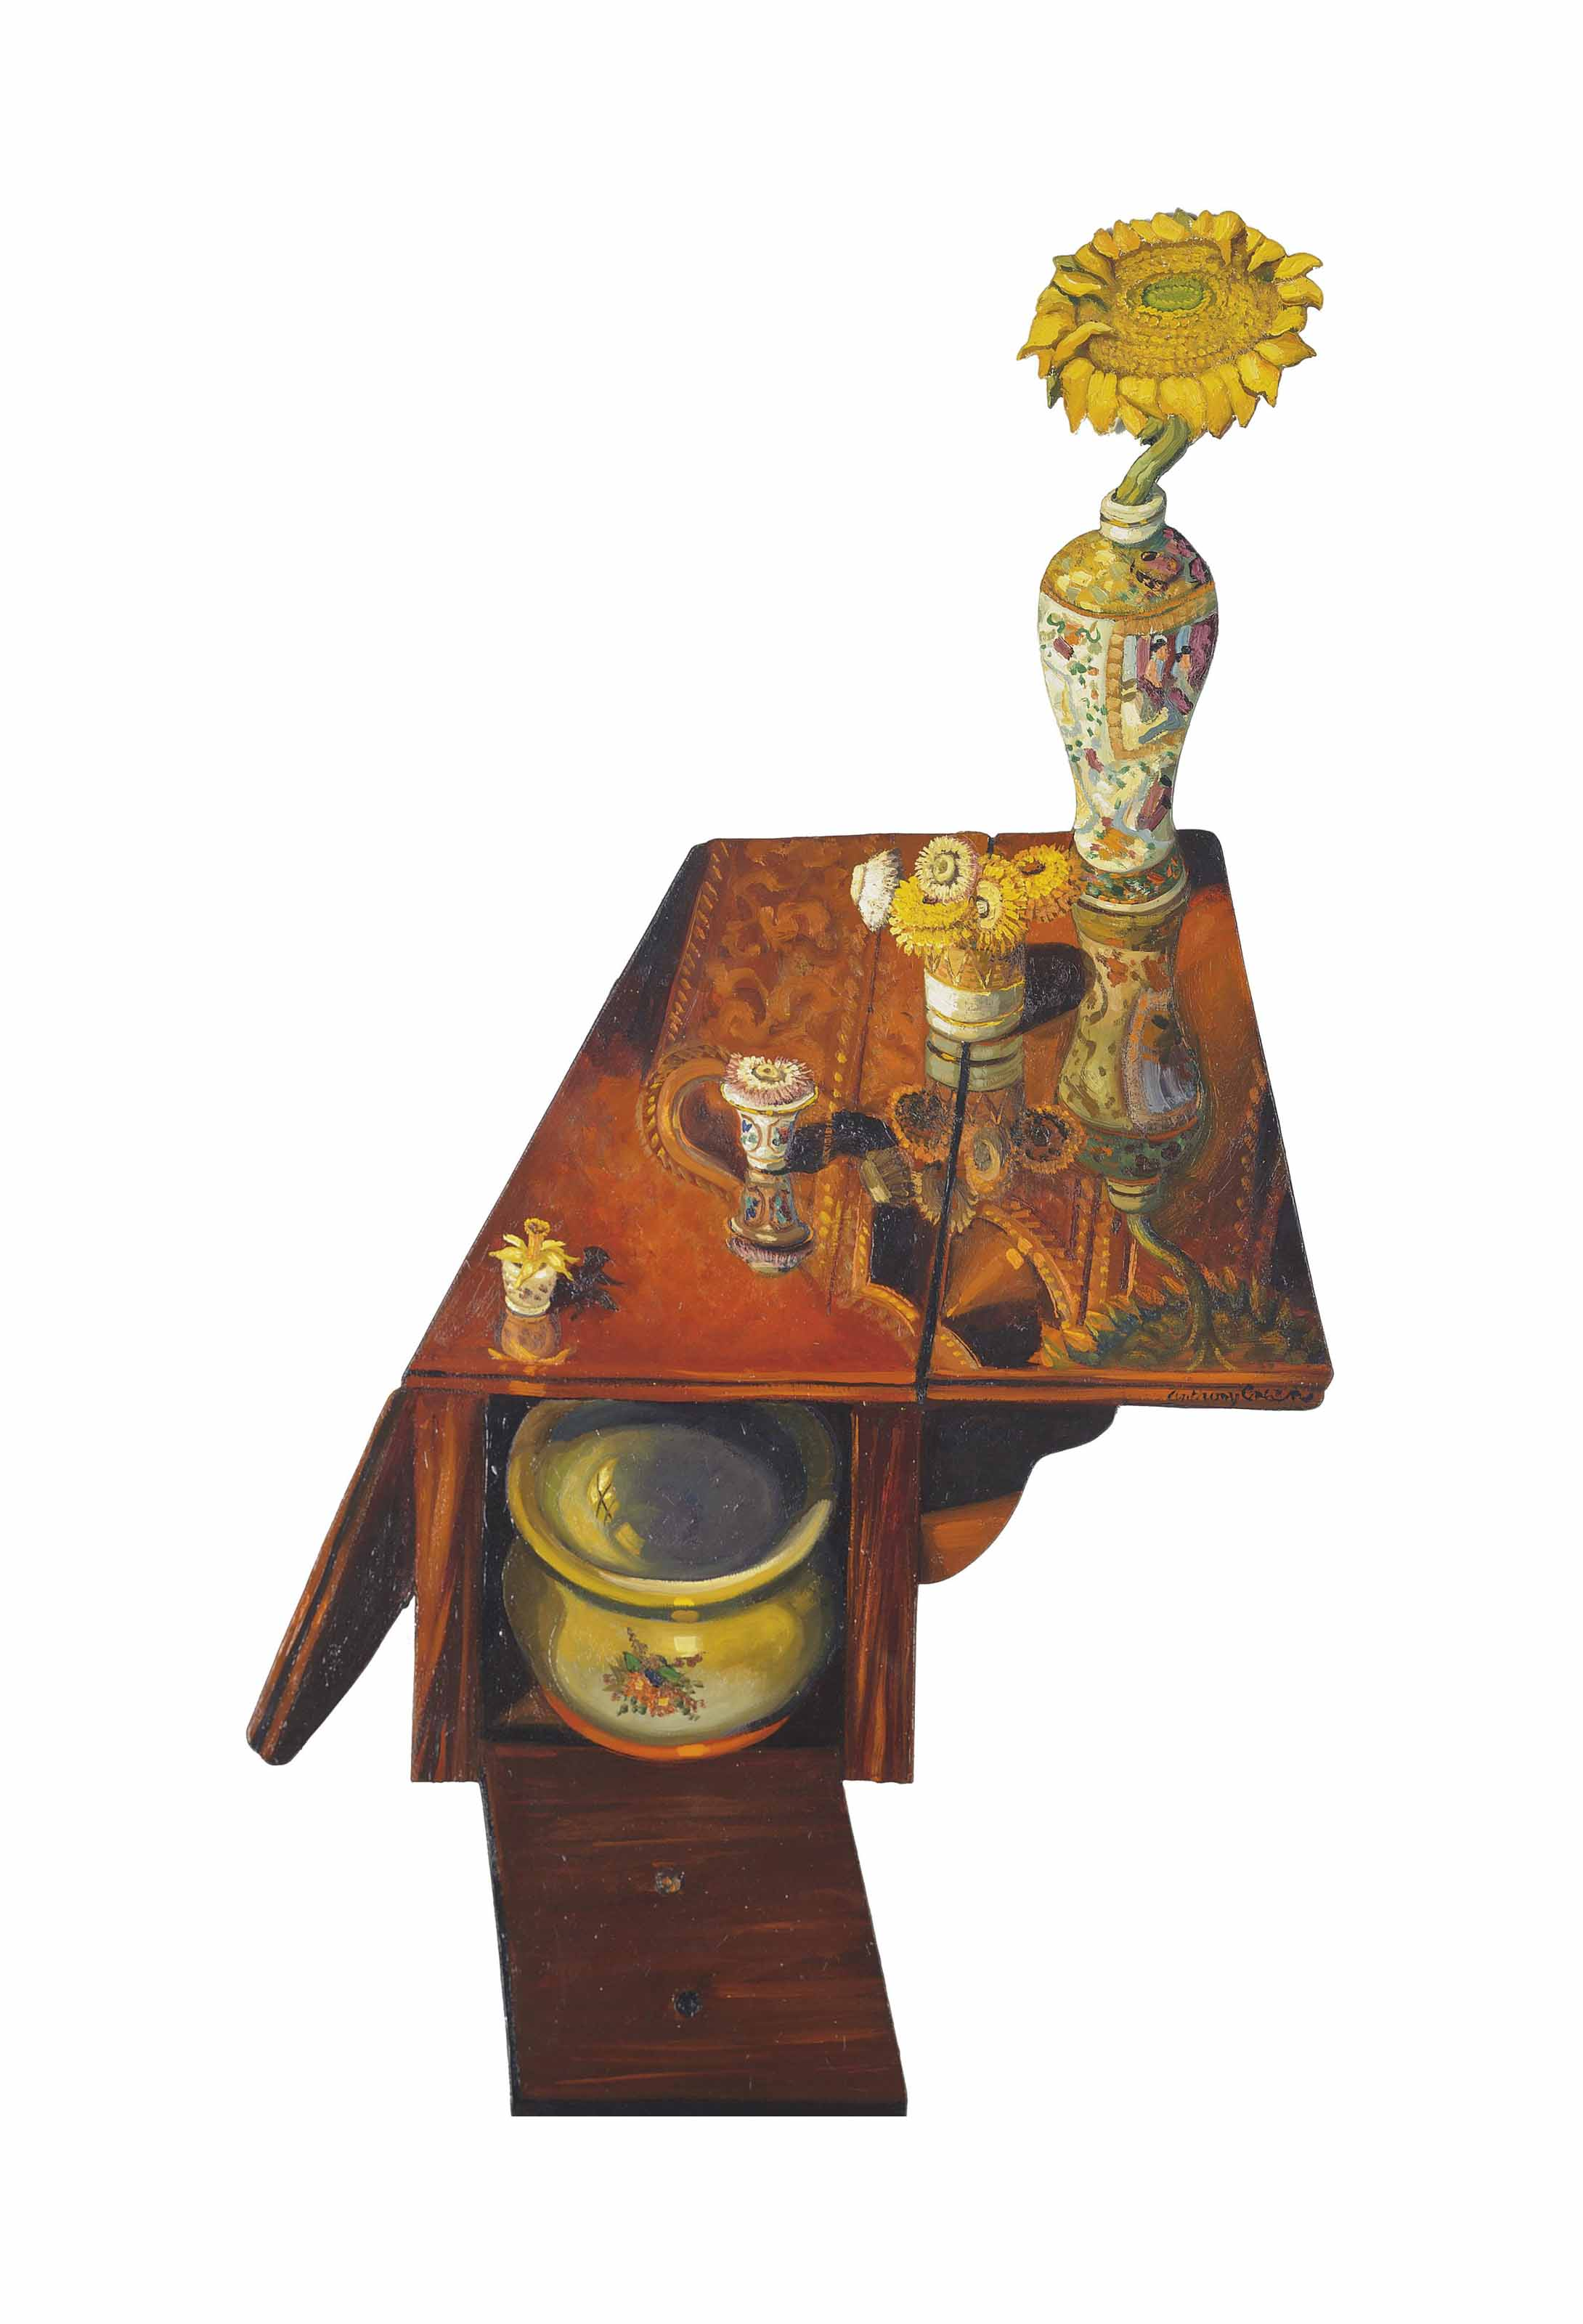 Ada Green's Bedside Table and Sunflower